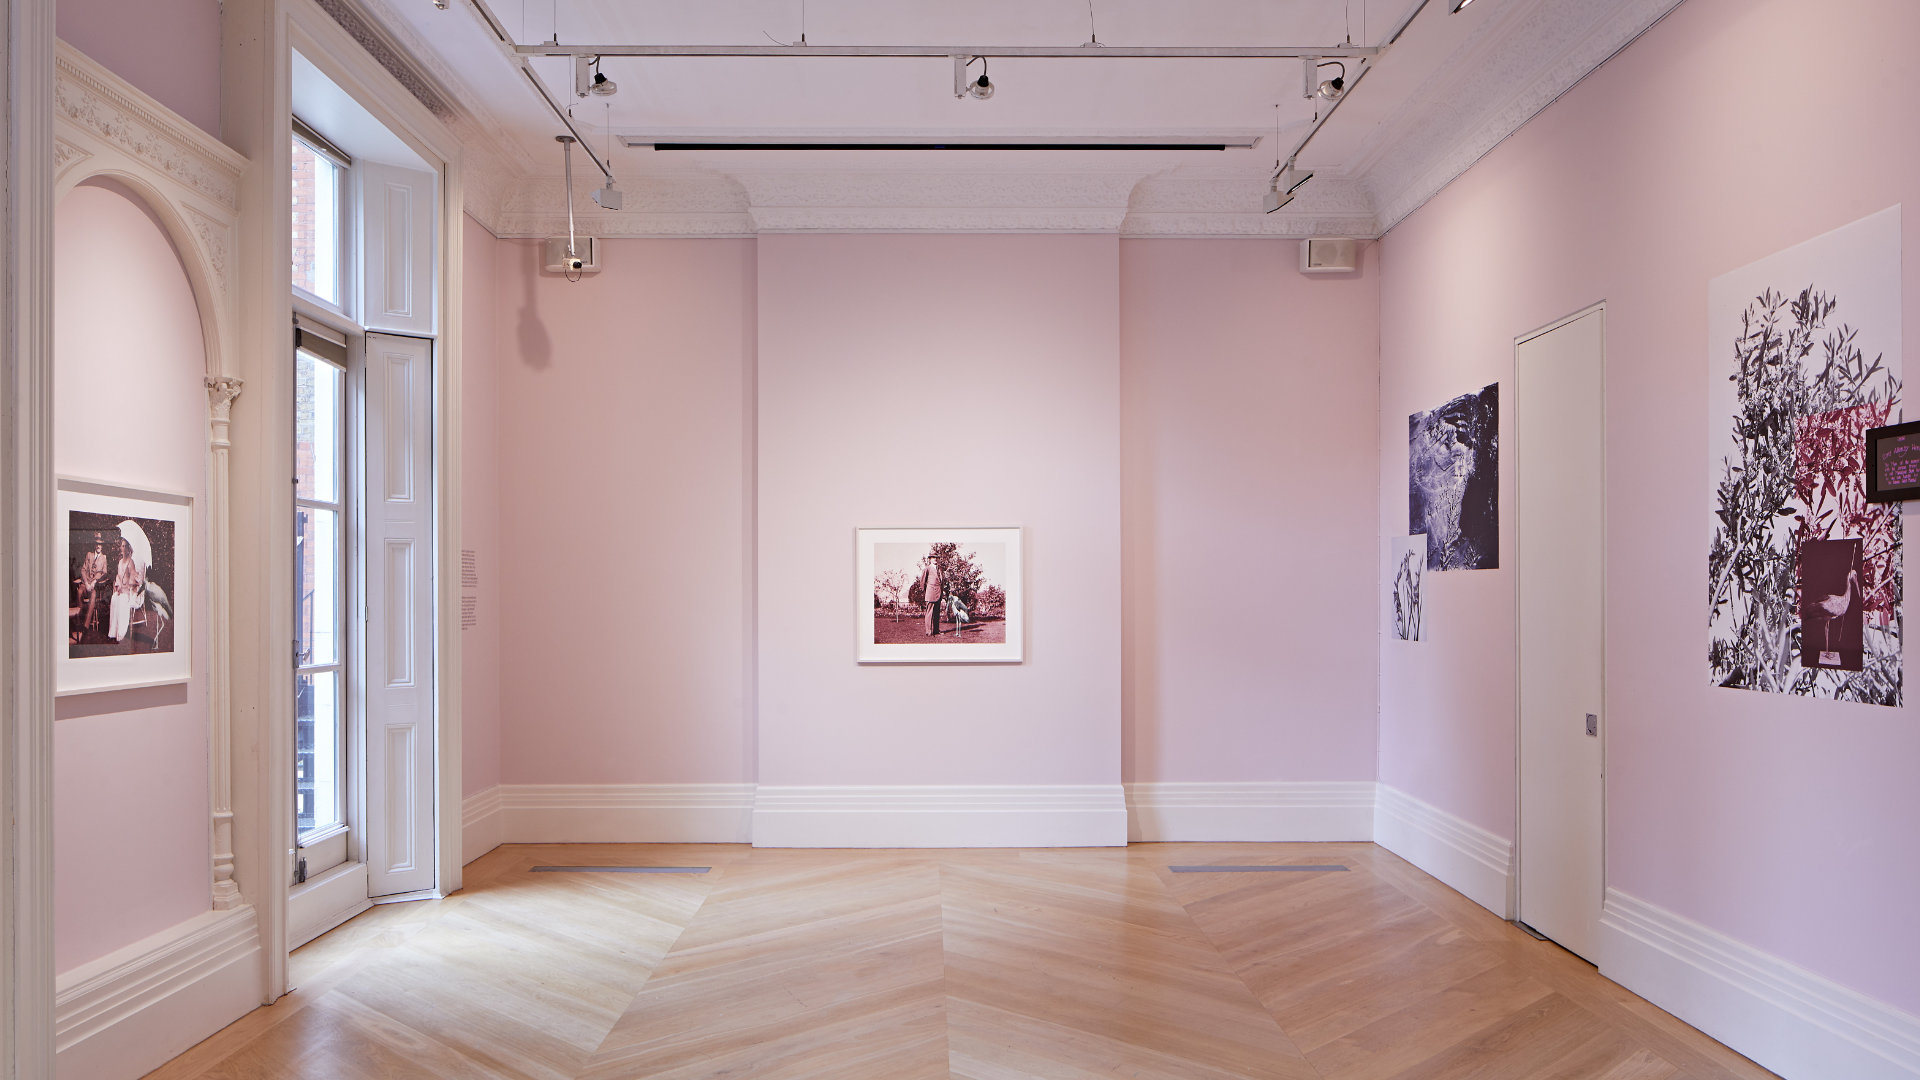 Photographs by Andy Stagg, courtesy of The Mosaic Rooms